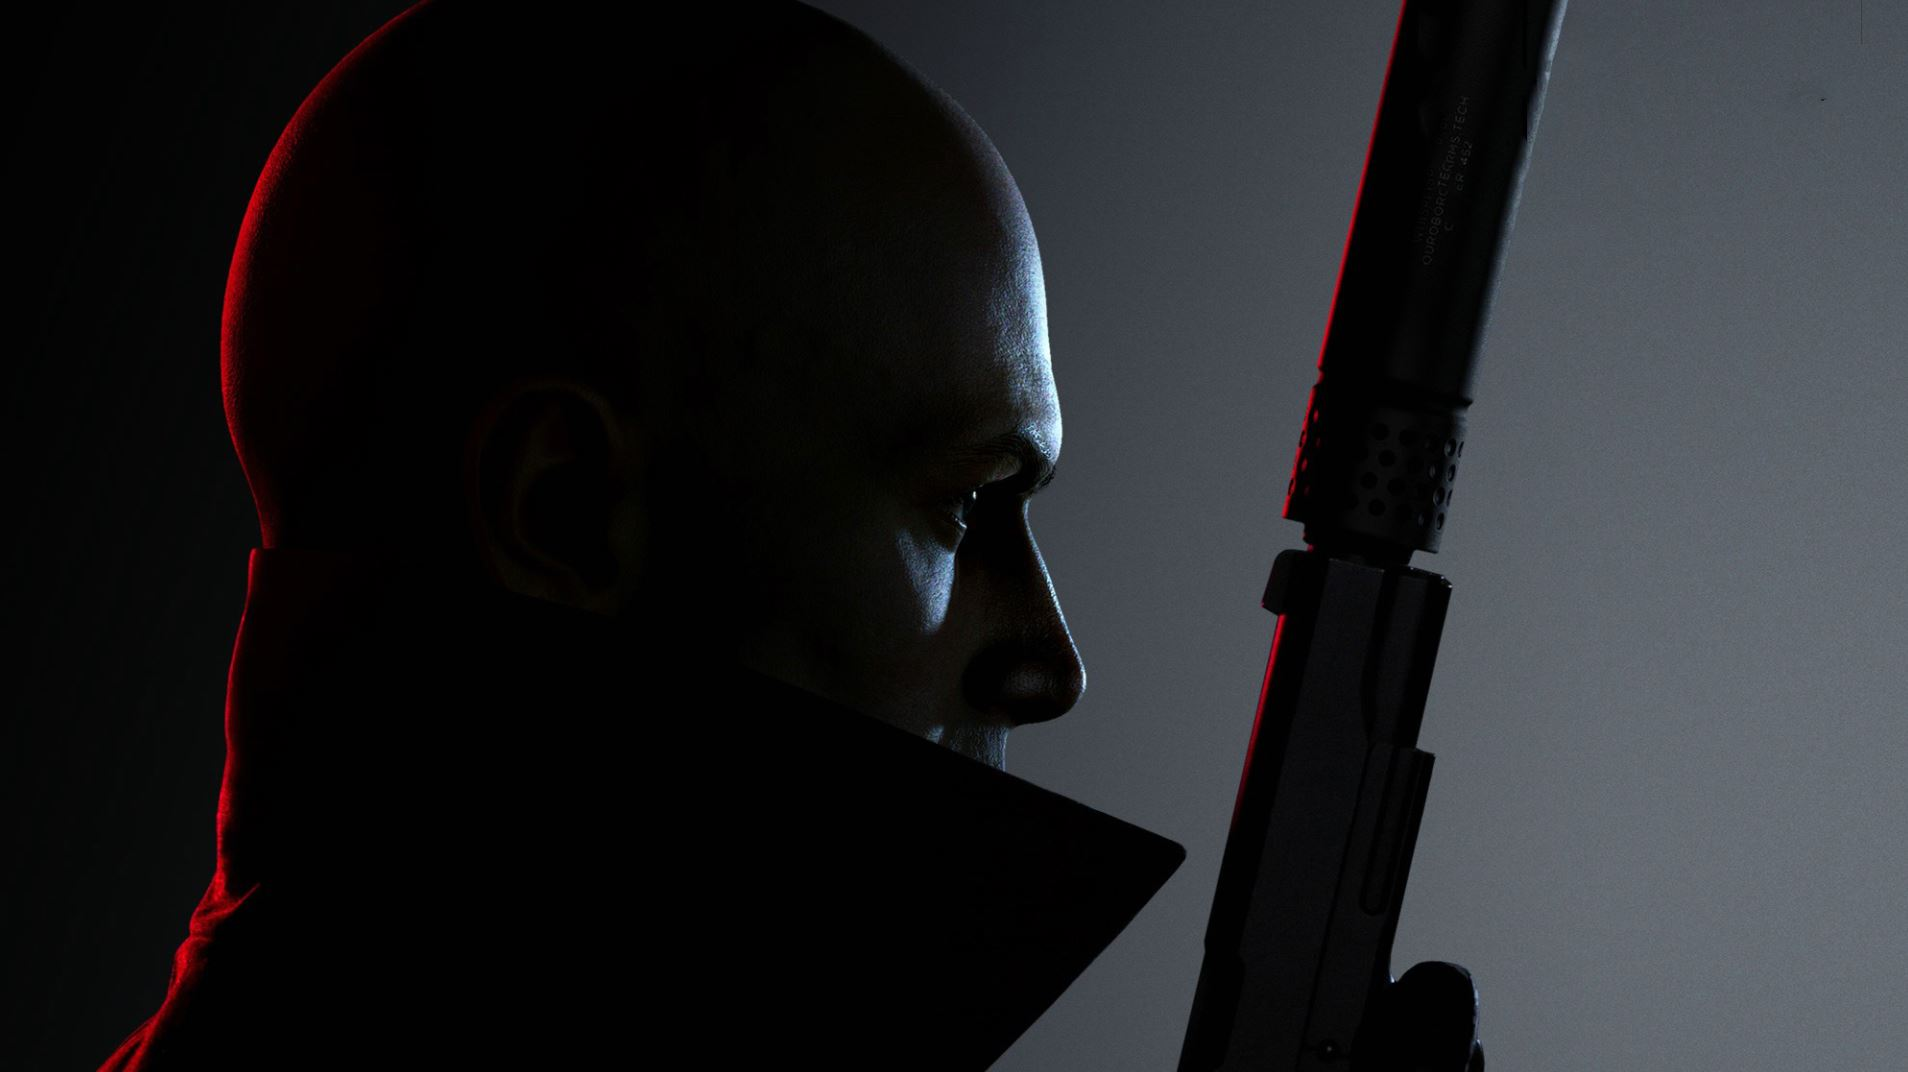 hitman-3-review-ps5-the-ultimate-version-of-hitman-and-a-confident-showcase-of-the-ps5s-power